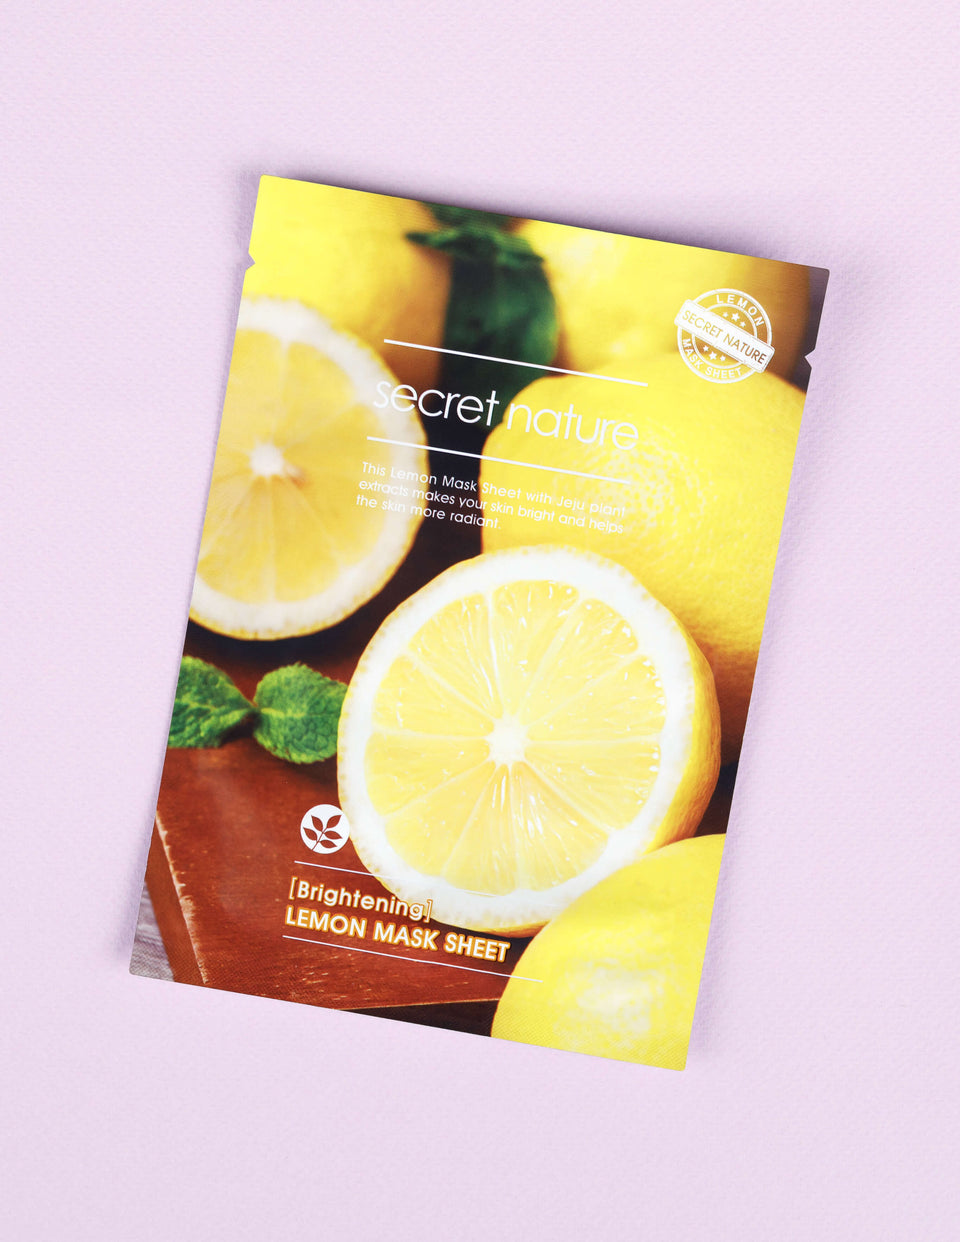 Brightening Lemon Mask Sheet 1pc